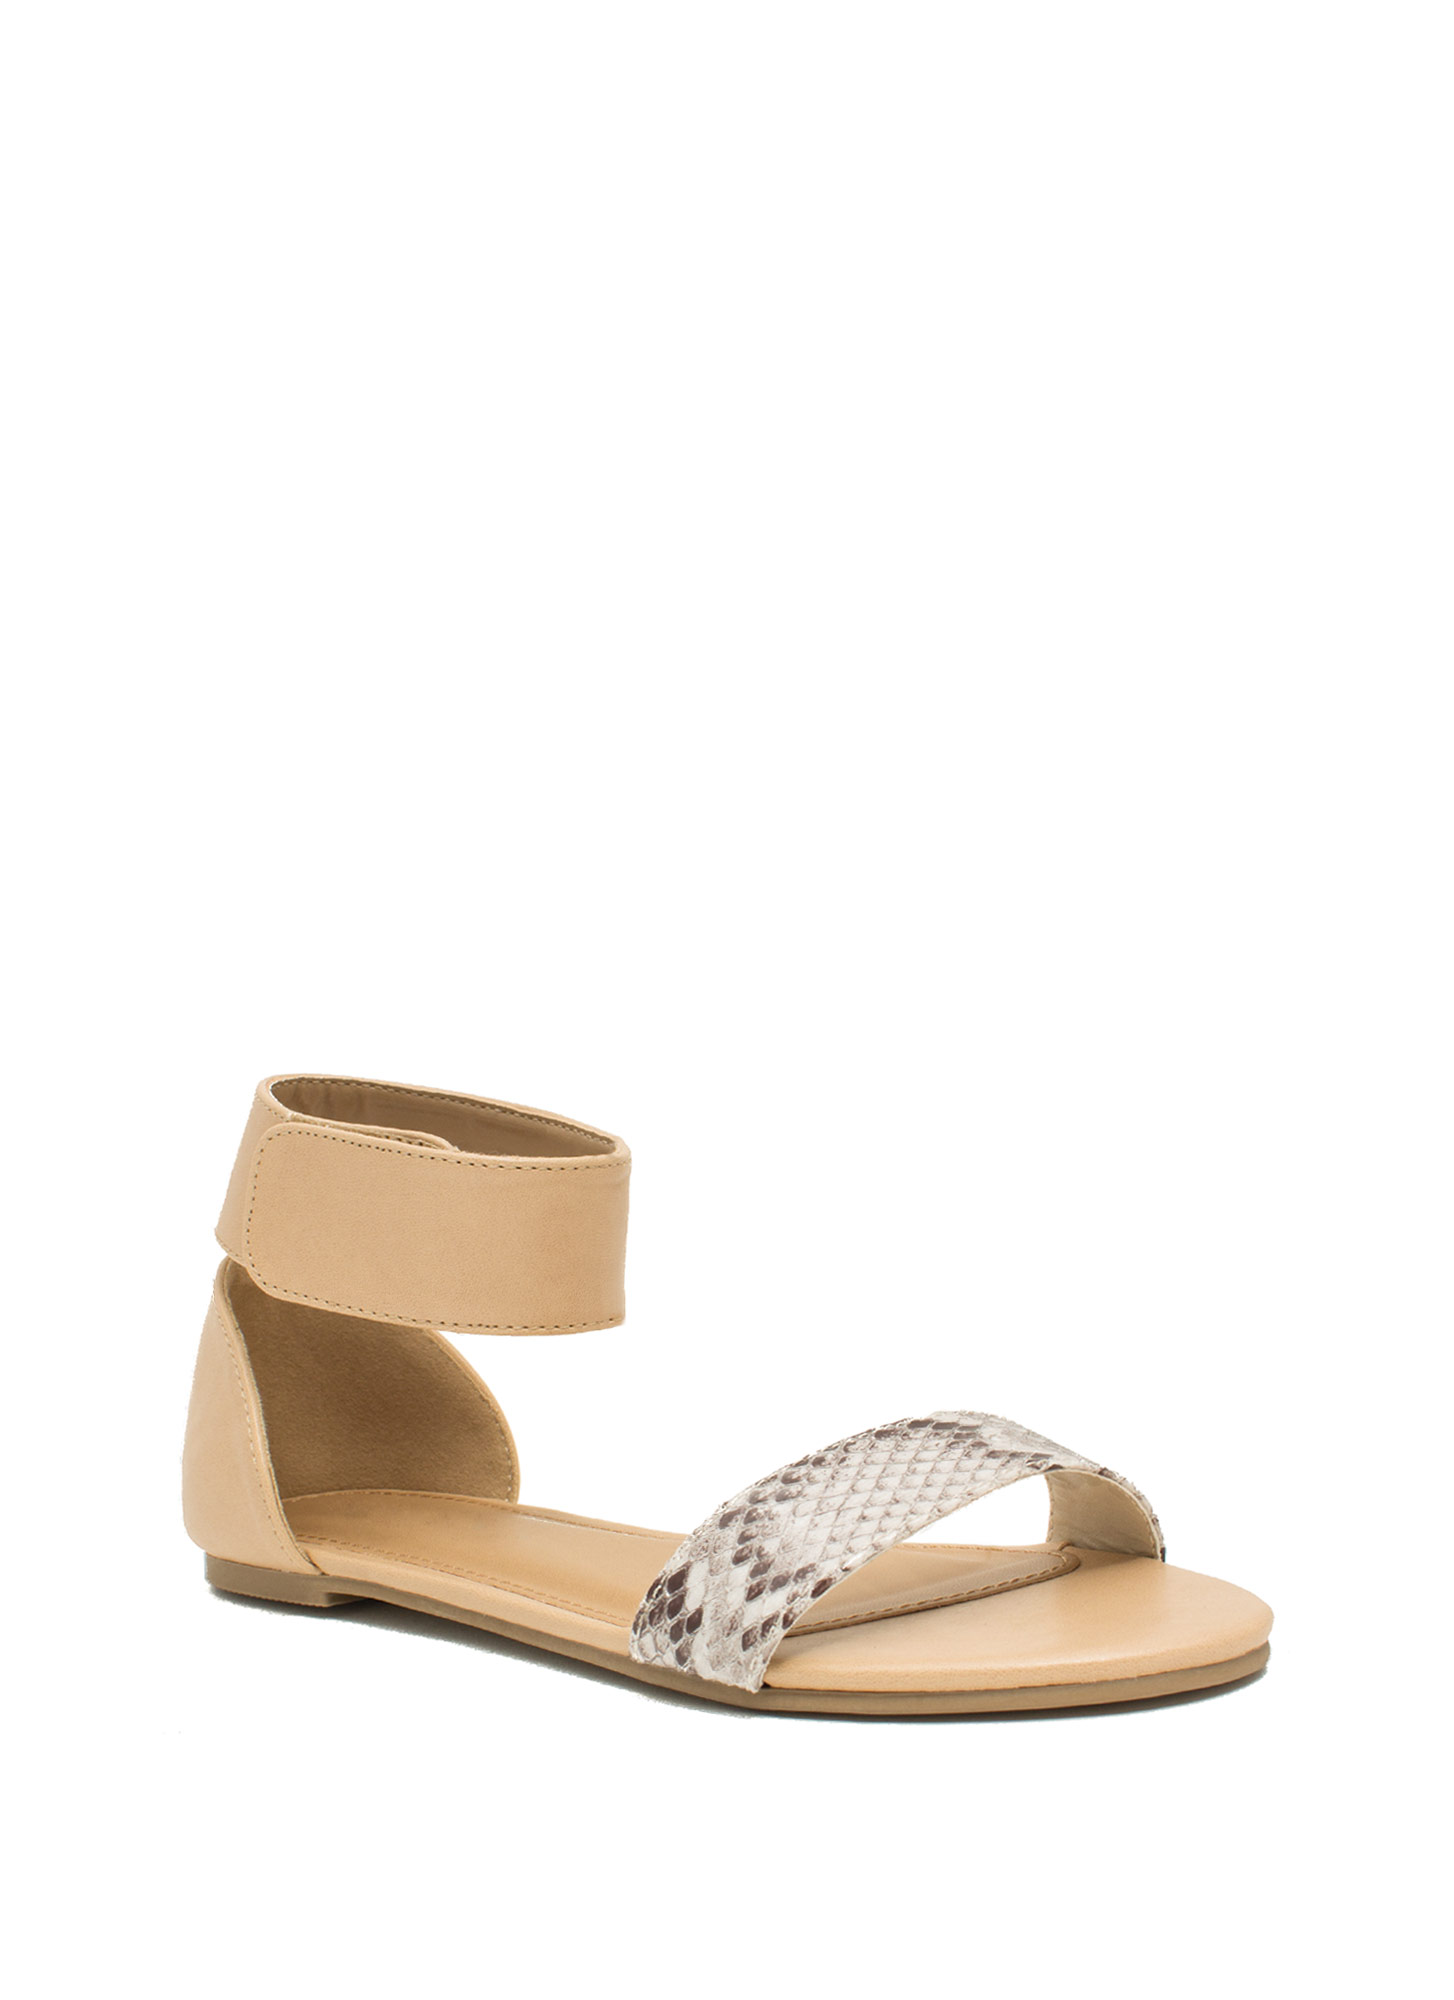 Ready To Mingle Single-Strap Sandals NATURAL